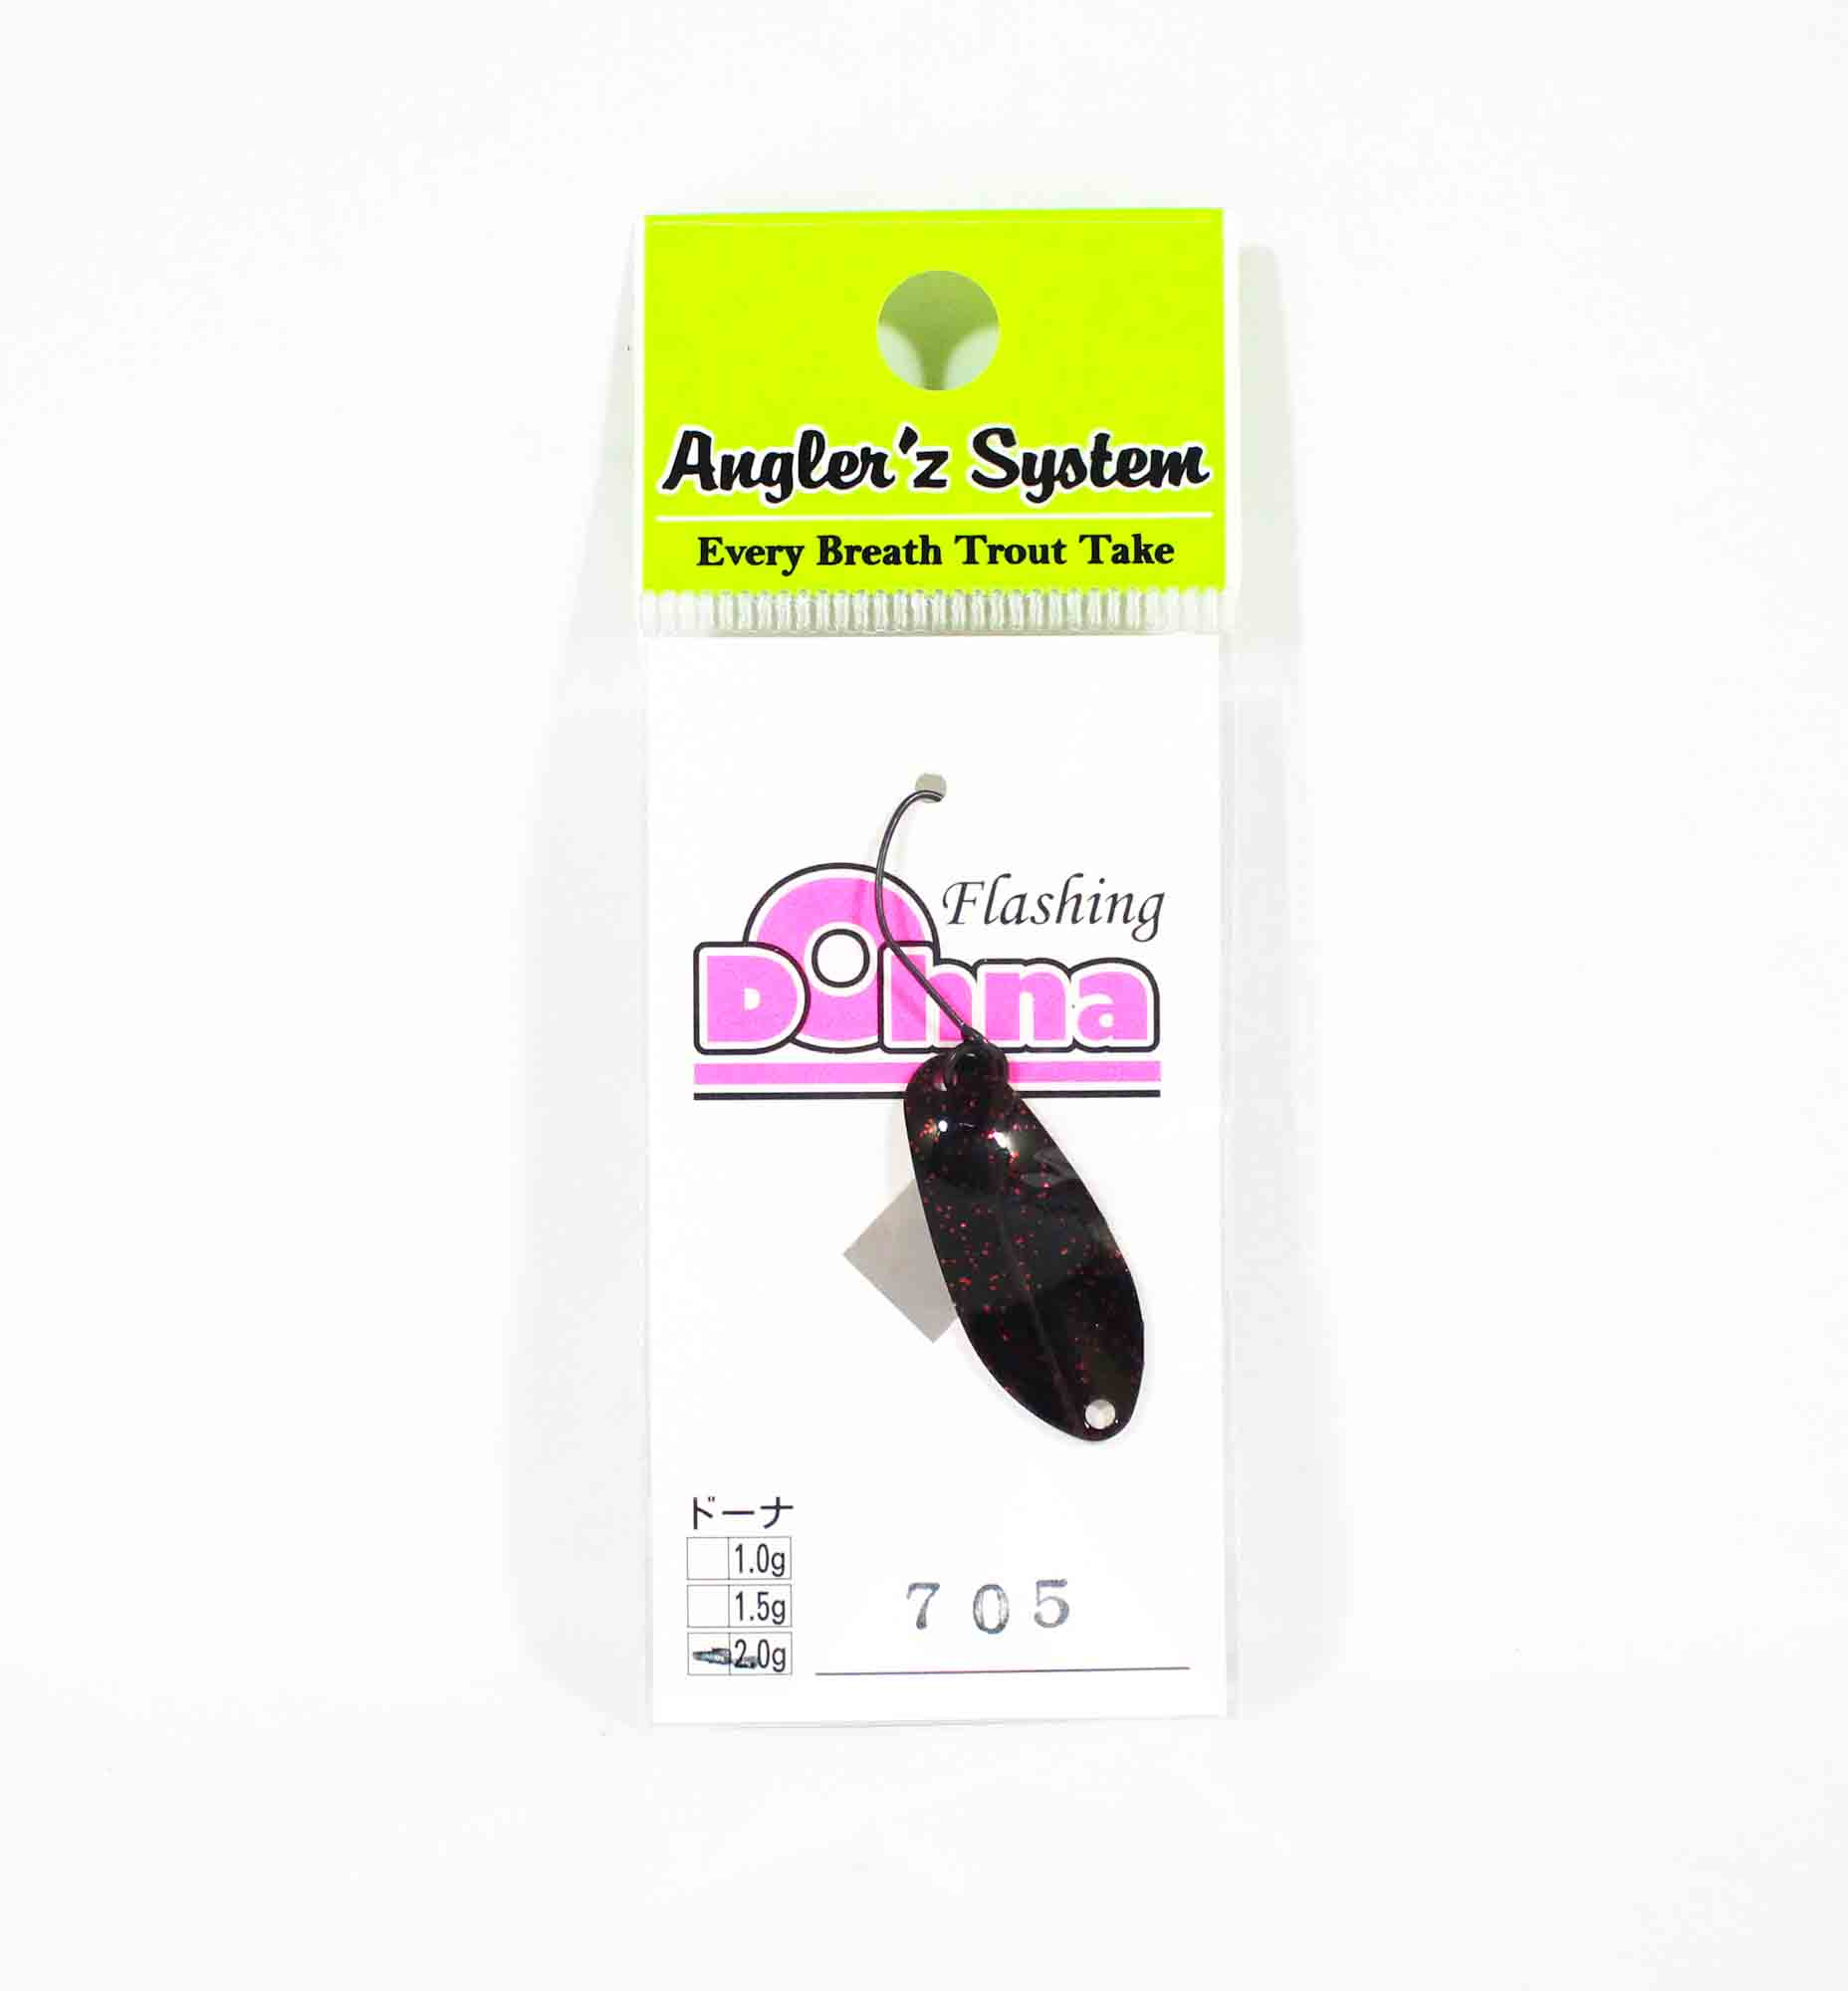 Anglers System Antem Dohna 2.0 grams Spoon Sinking Lure 705 (6245)